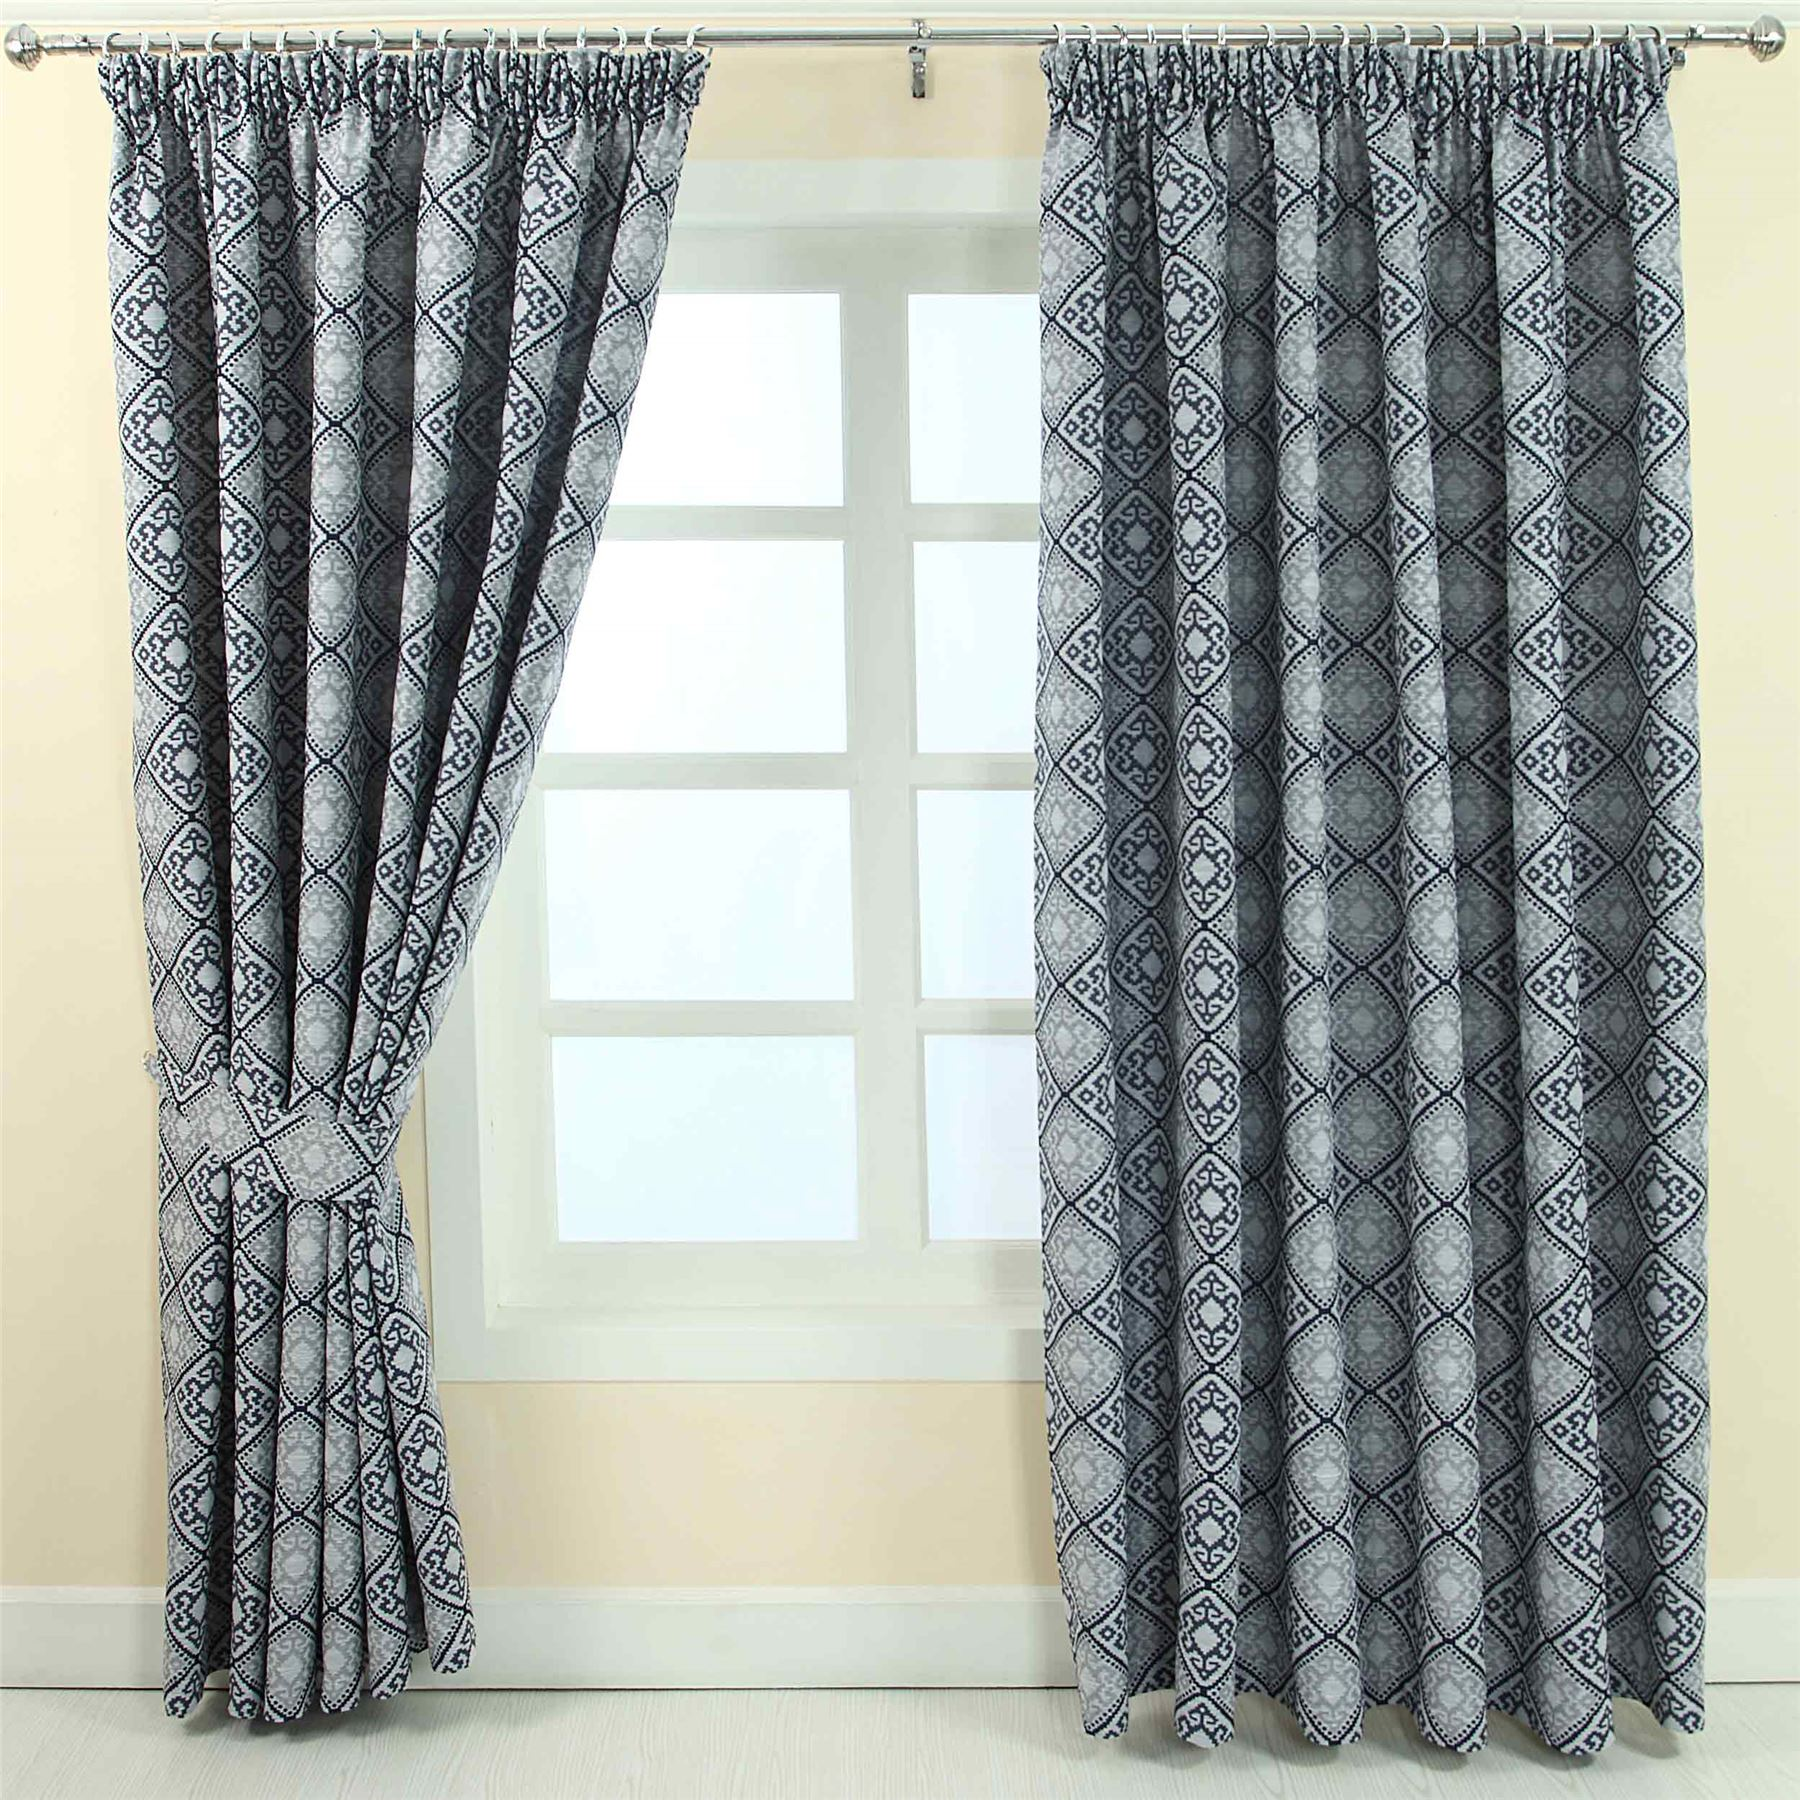 designs made beautiful fashionable curtain curtains bay ideas for ready windows large